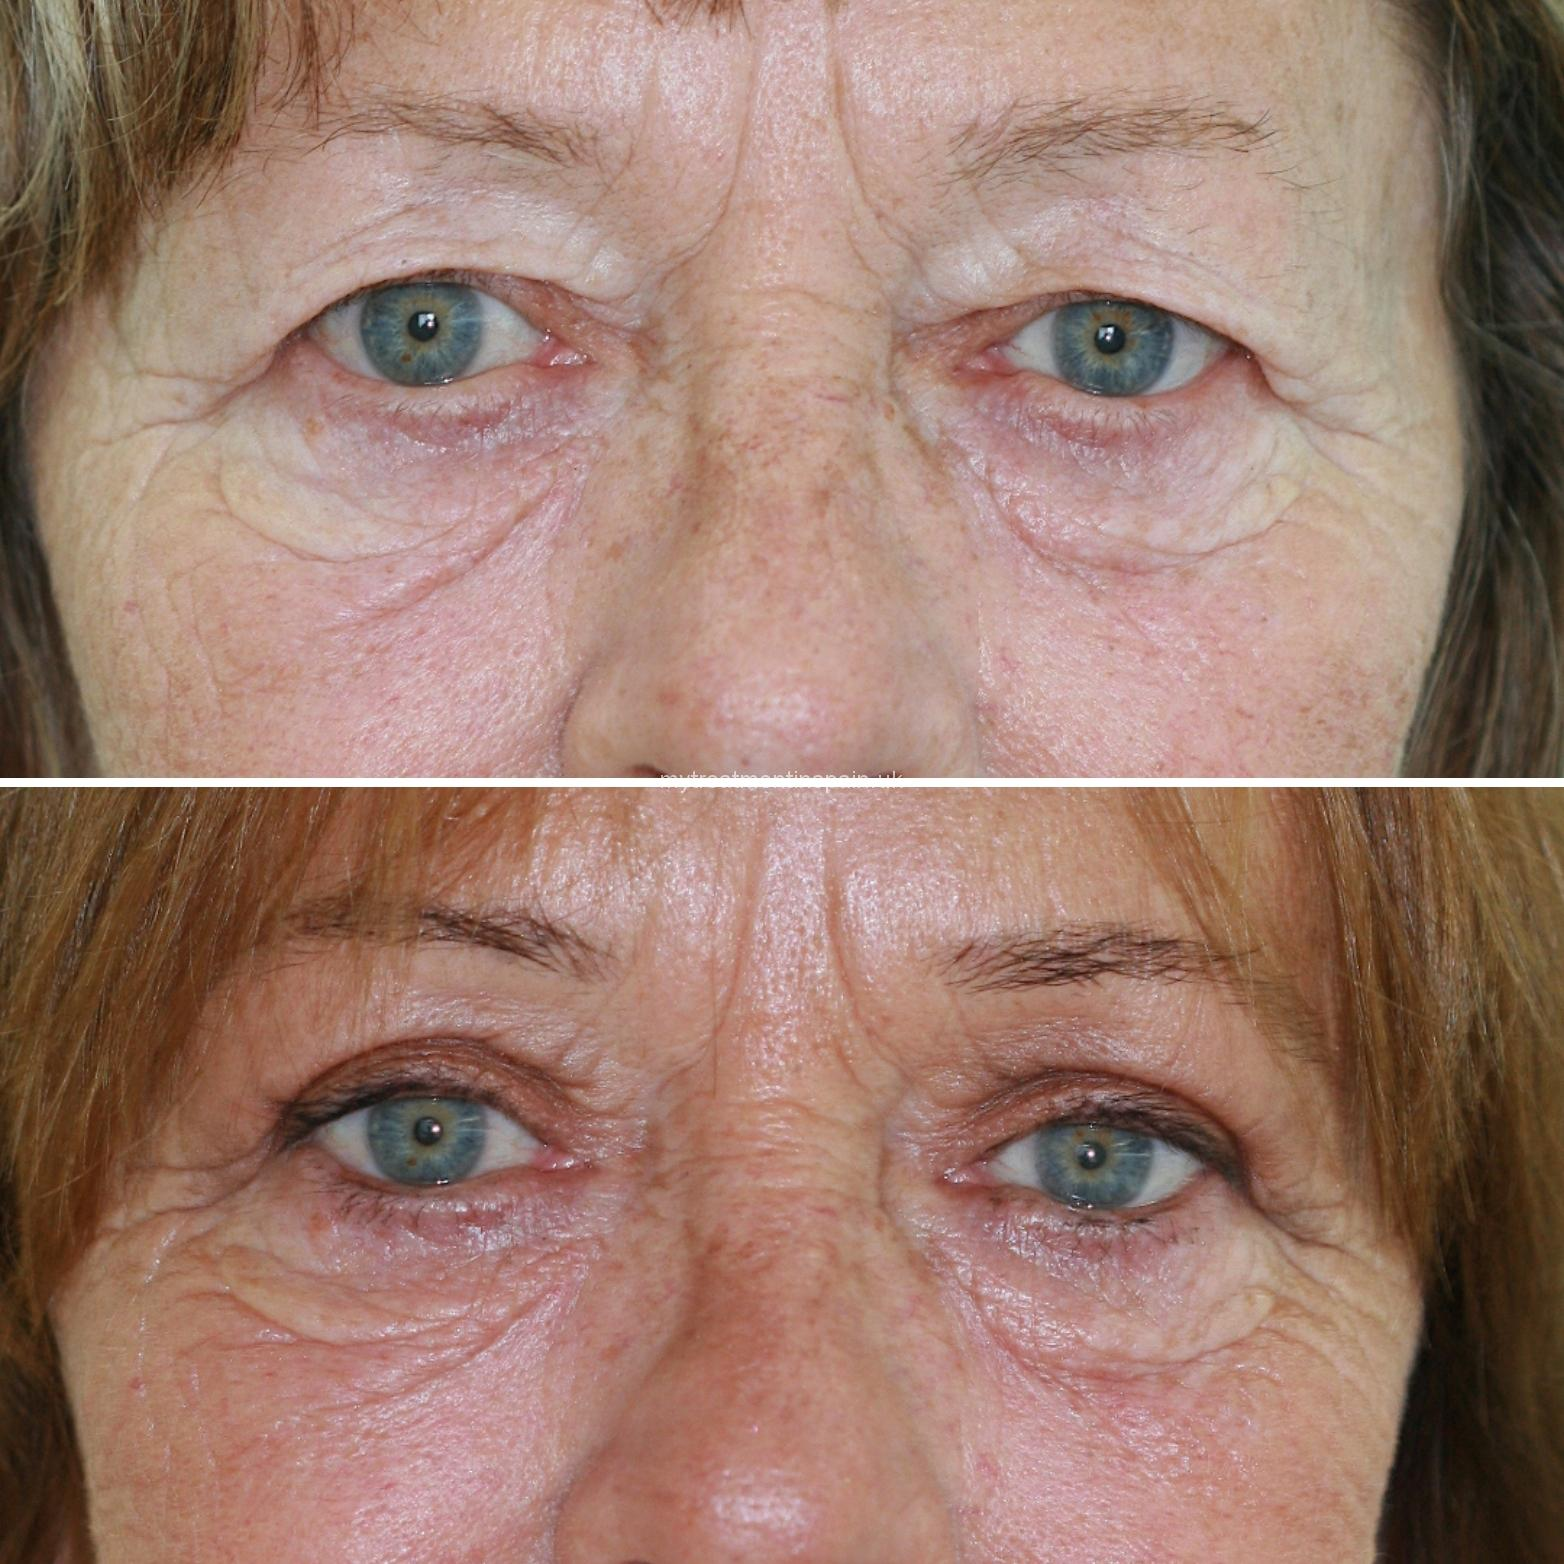 blepharoplasty in Spain before and after cases